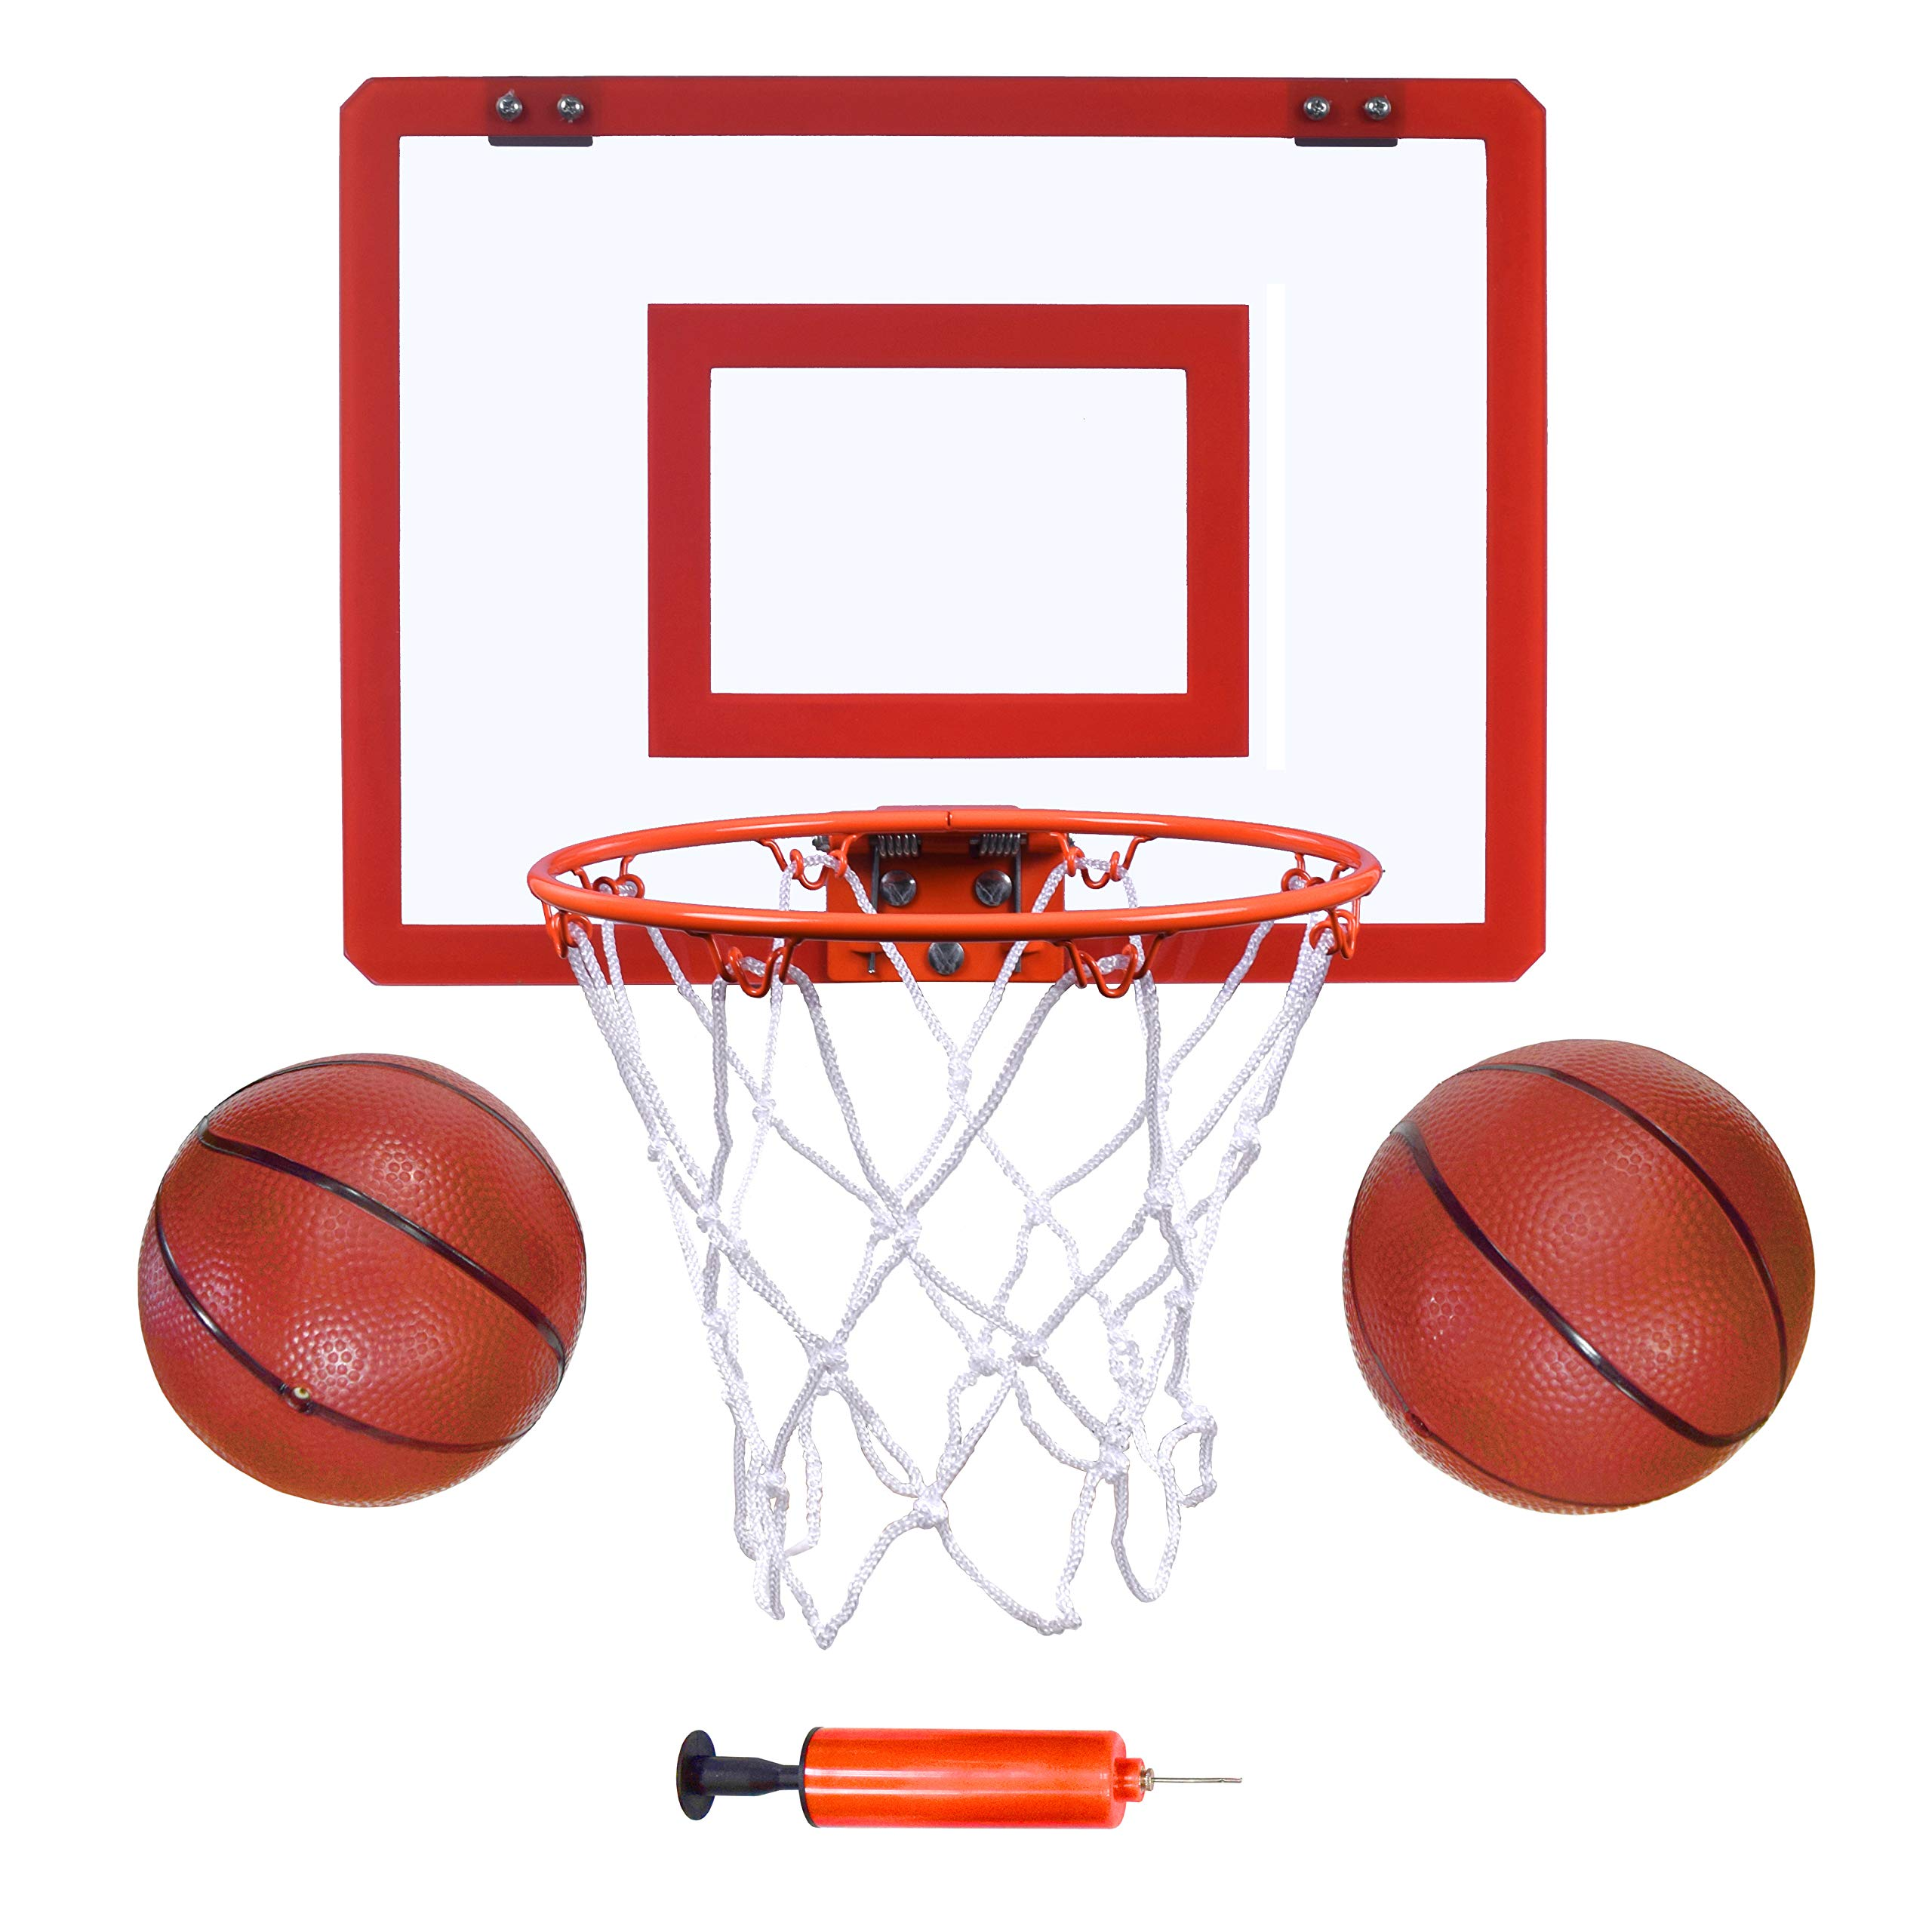 Indoor Mini Basketball Hoop and Balls 16''x12 - Basketball Hoop for Door Set - Indoor Mini Basketball Game for Kids by Long Game